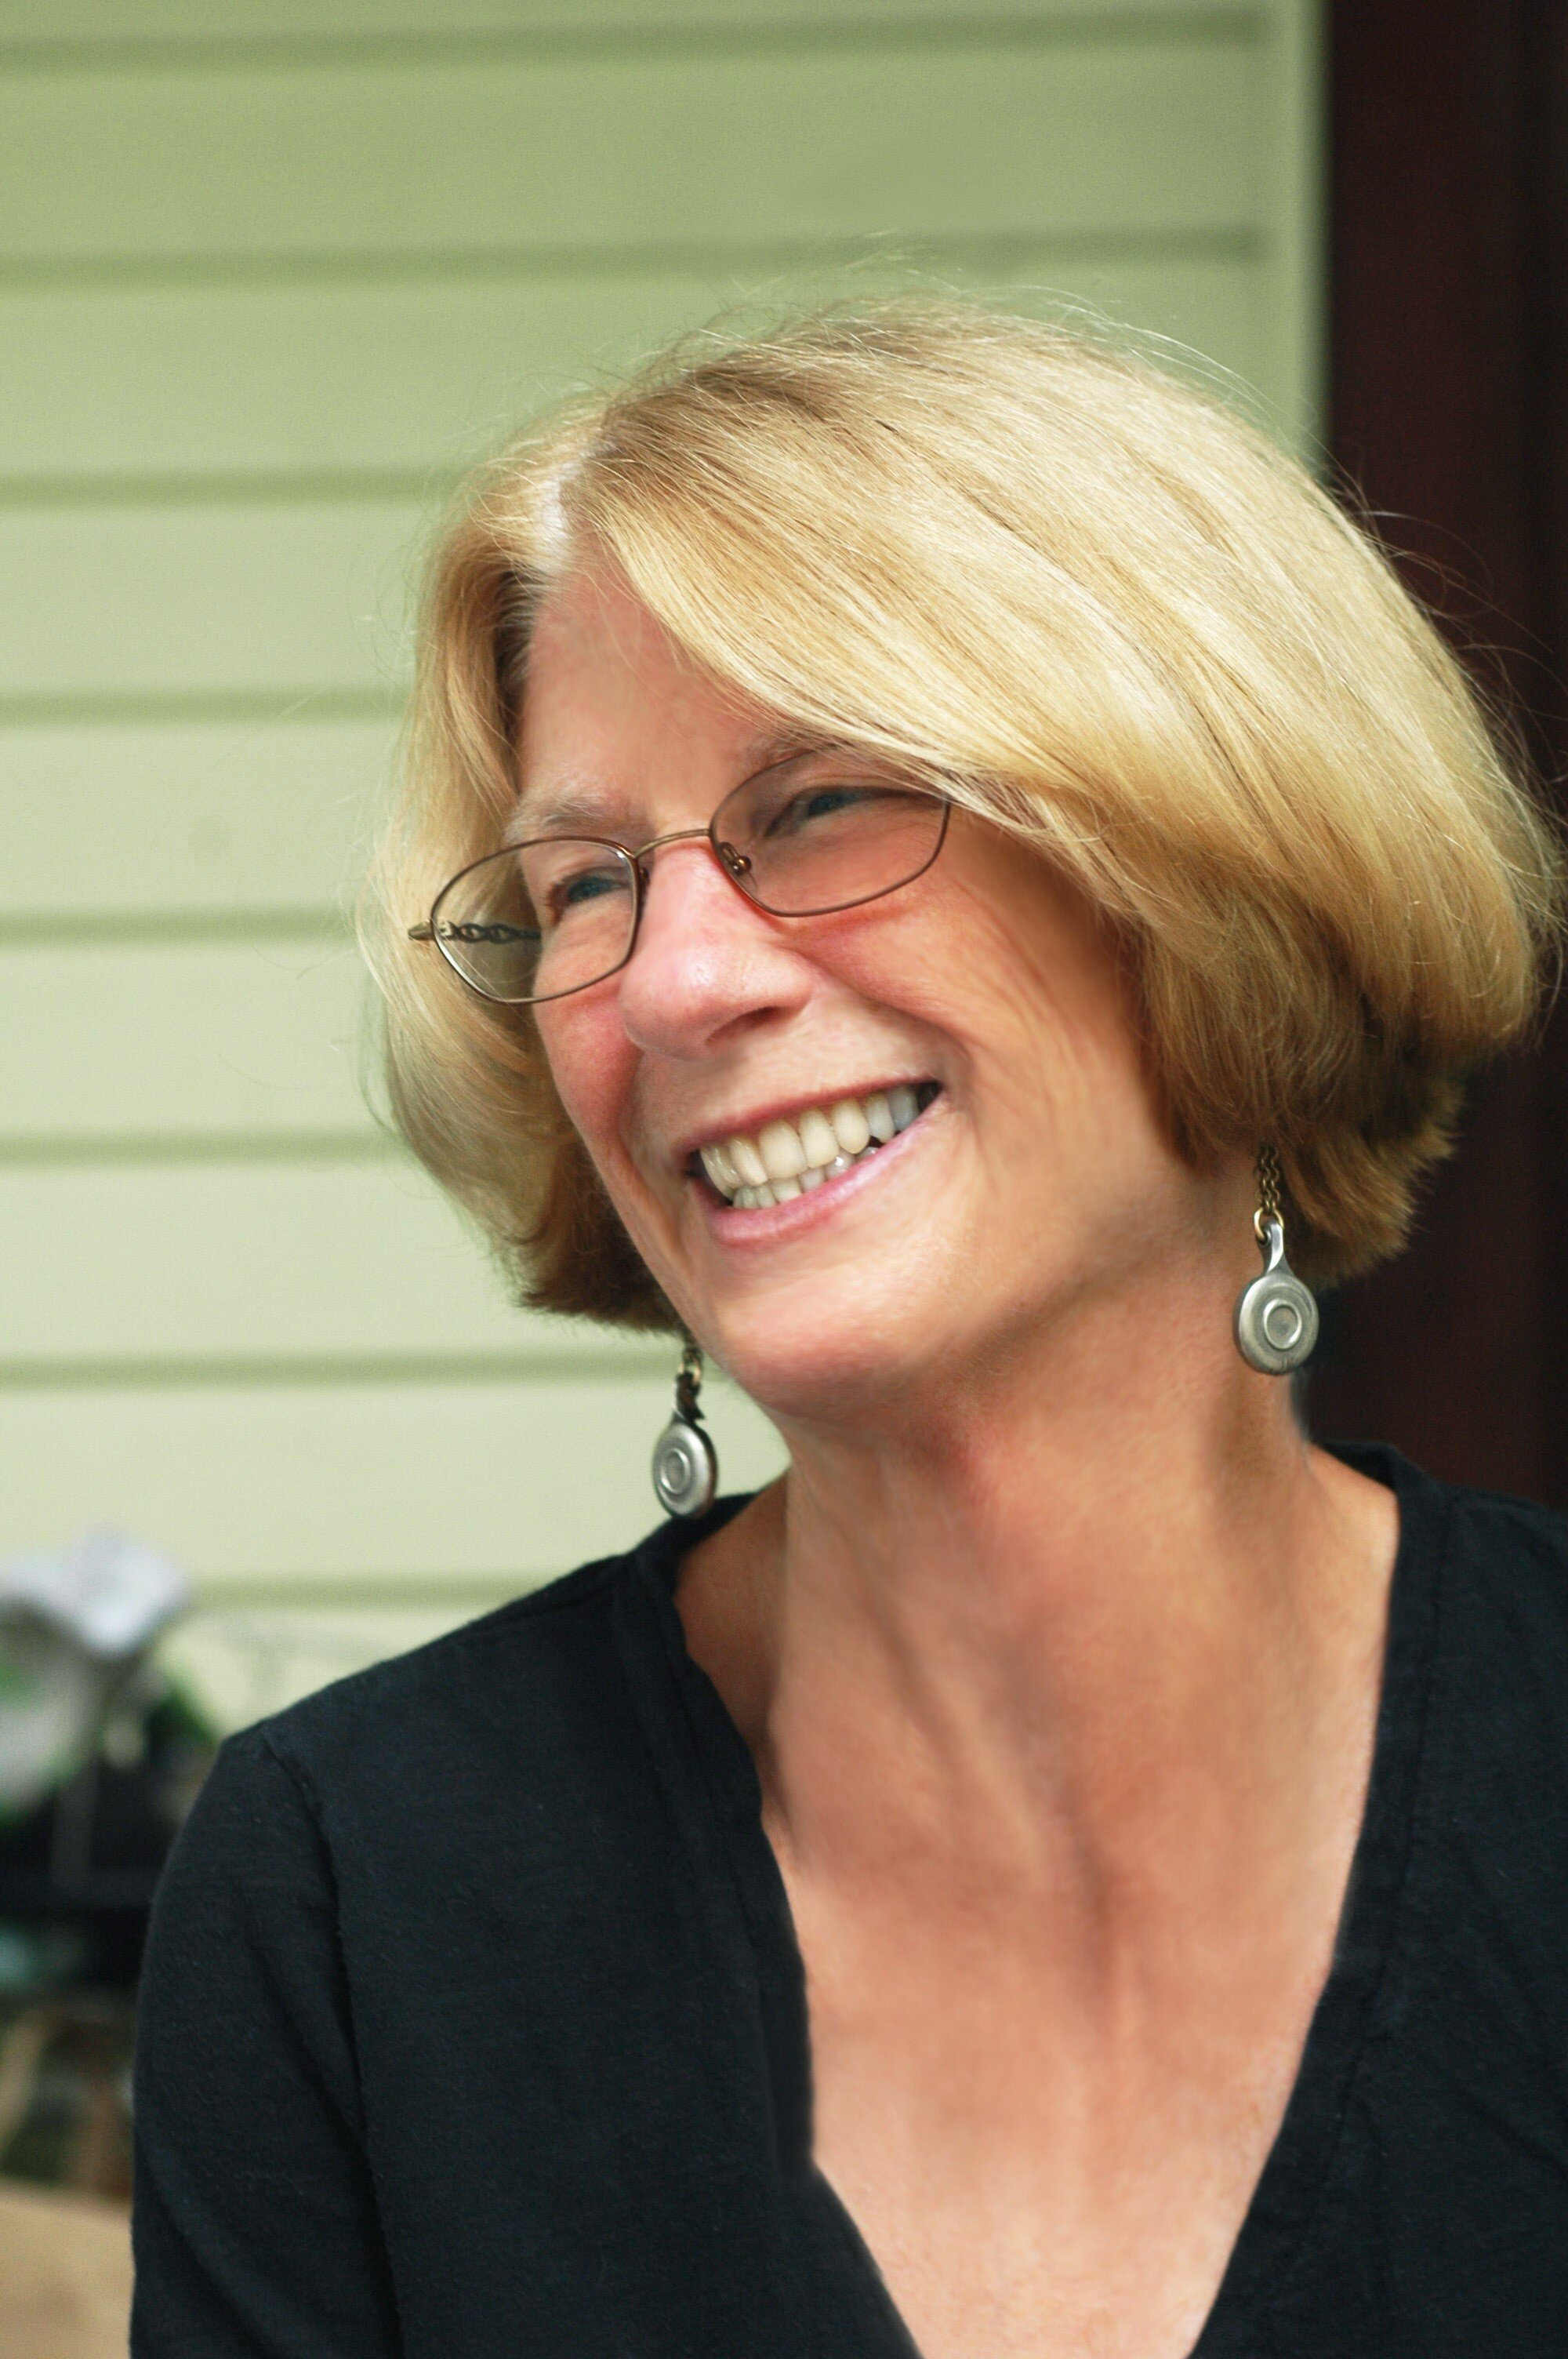 Betsy Sholl - Betsy Sholl's ninth collection of poetry is House of Sparrows: New and Selected Poems (University of Wisconsin, 2019). She teaches in the MFA in Writing Program of Vermont College of Fine Arts and served as Poet Laureate of Maine from 2006 to 2011.Poetry Crawl, Saturday